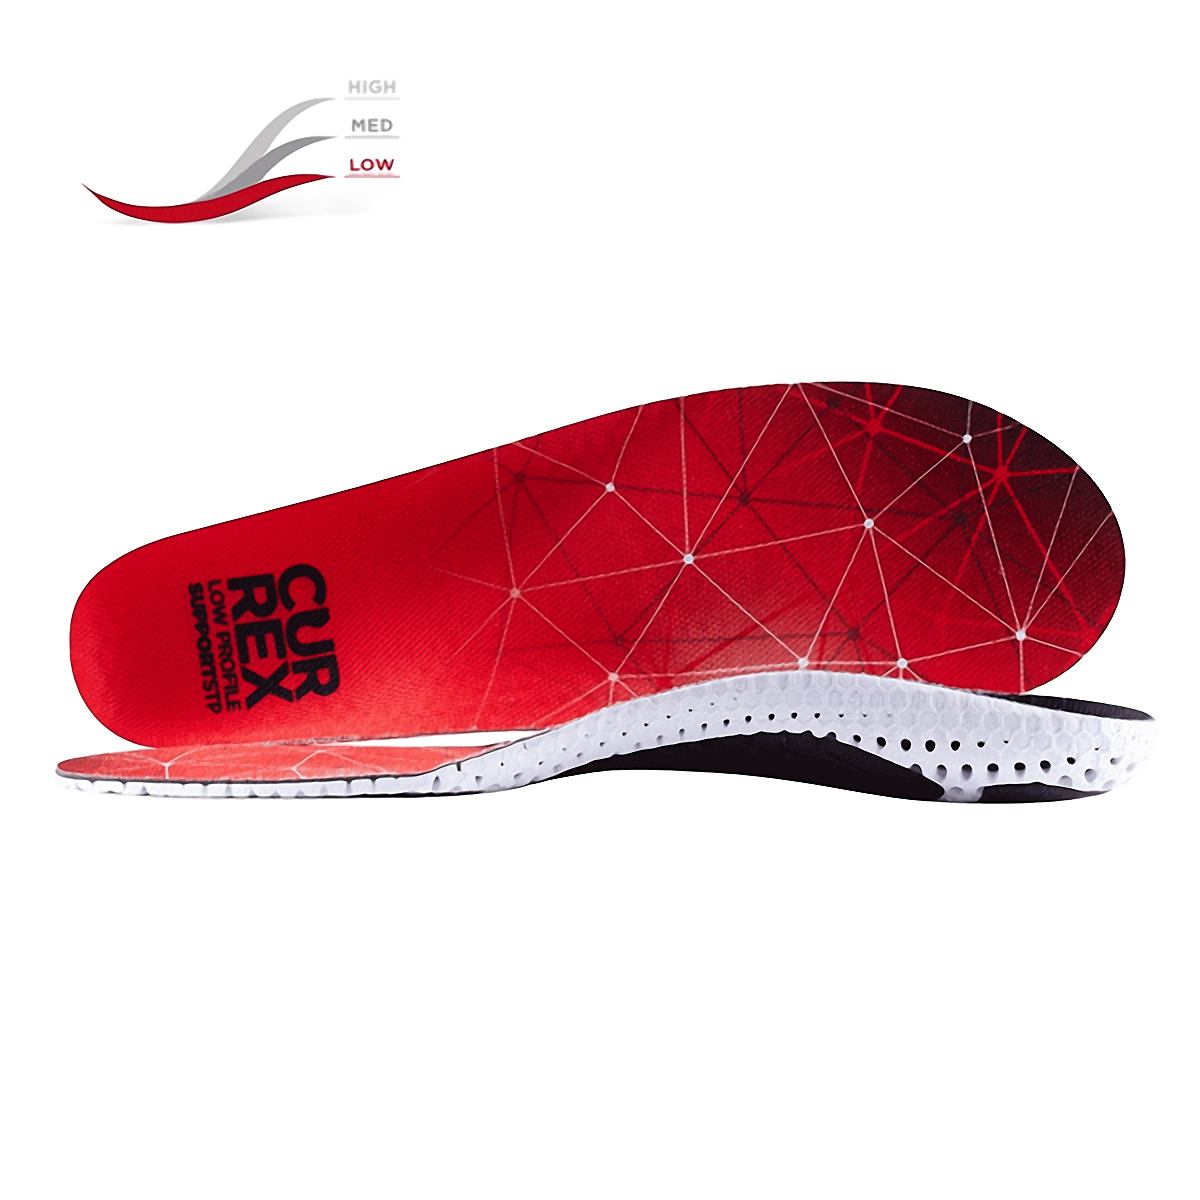 Currex Insole SupportSTP Low Profile - Color: Red Size: XS, Red, large, image 1